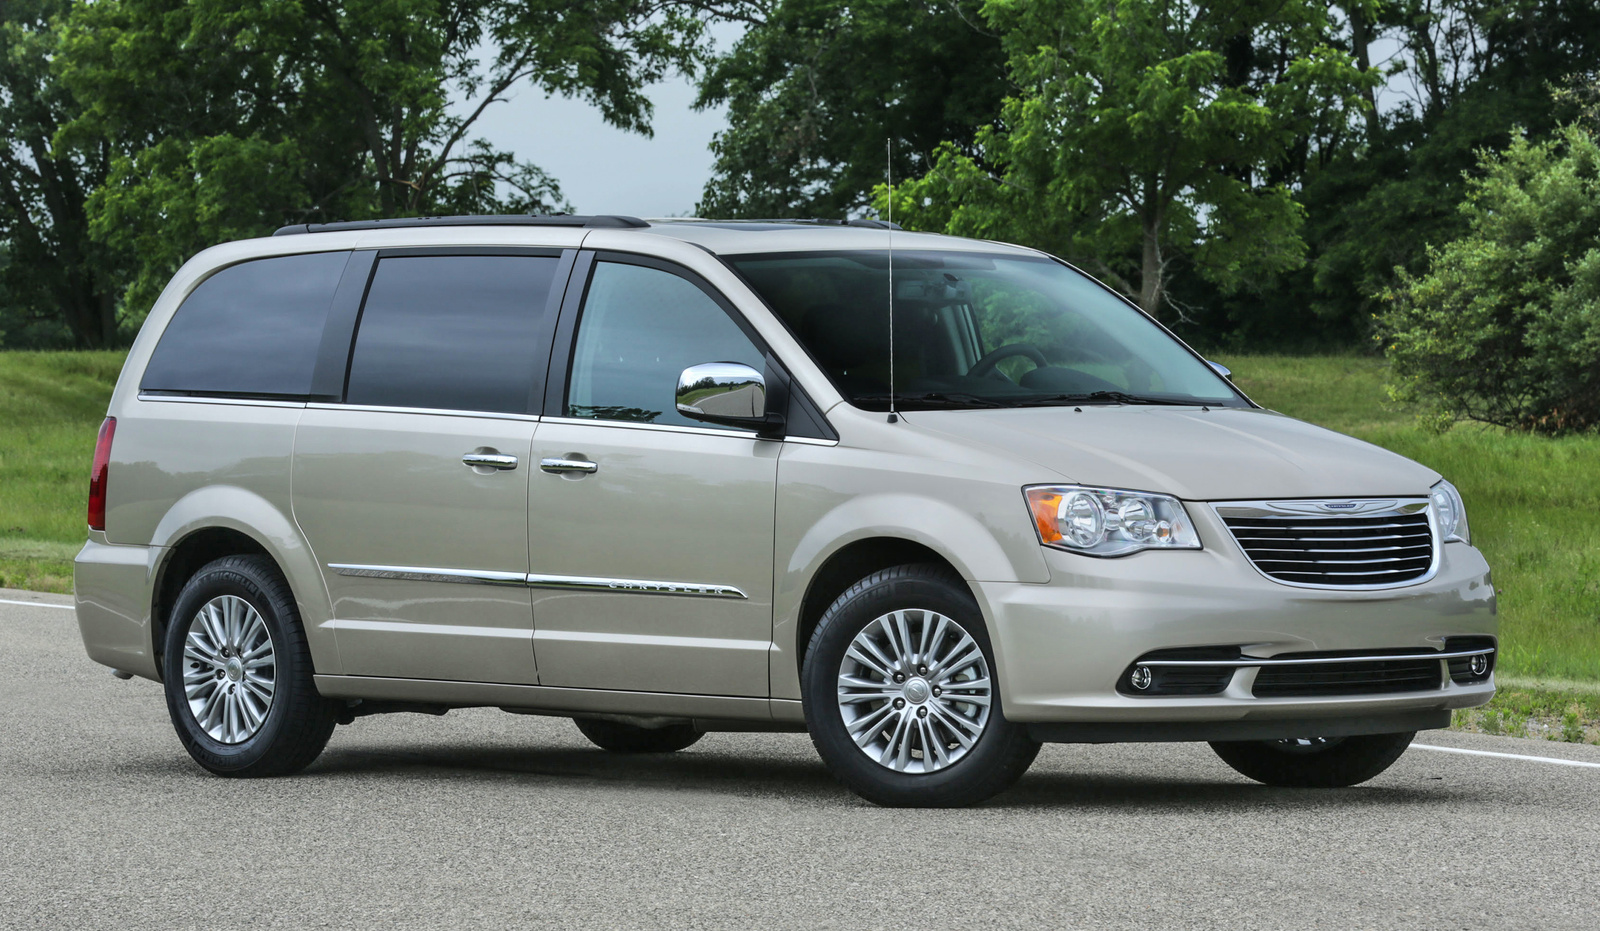 2016_chrysler_town___country pic 8236917367407945296 1600x1200 2016 chrysler town & country overview cargurus 2007 Chrysler Town and Country Wiring-Diagram at edmiracle.co